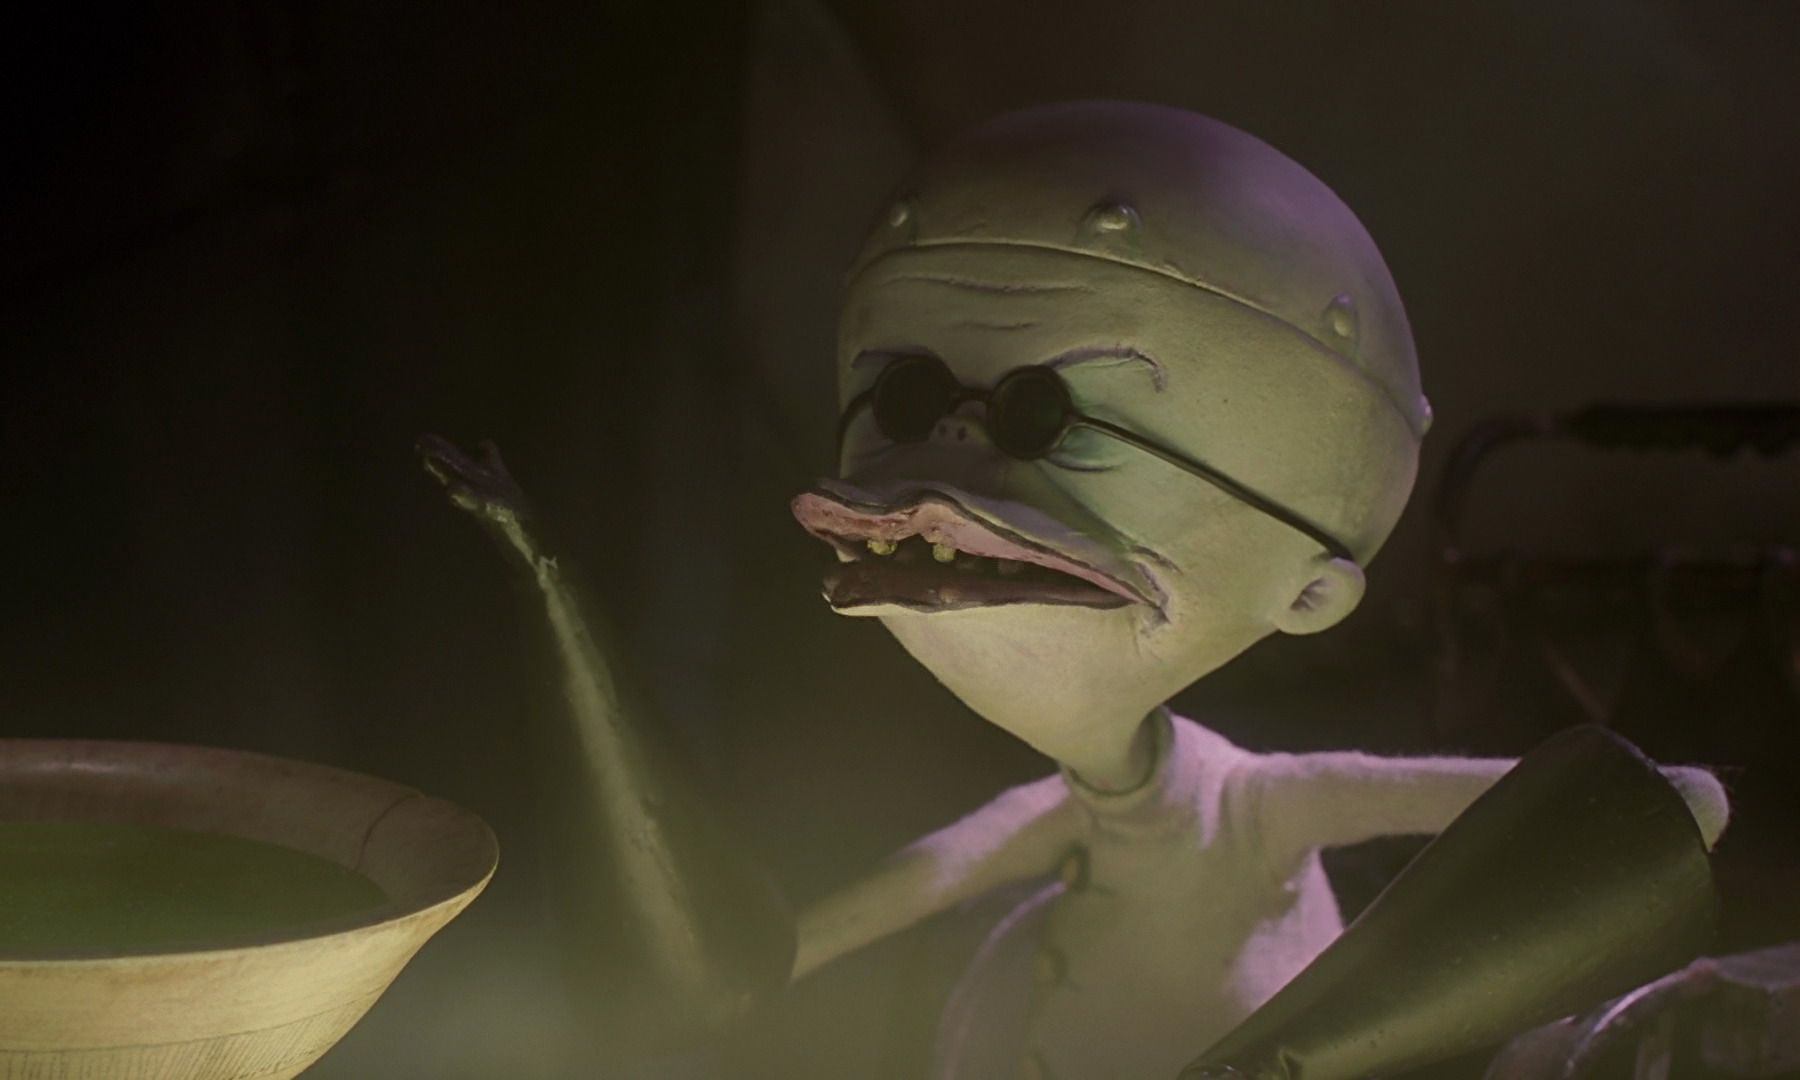 William Hickey as Dr. Finklestein in The Nightmare Before Christmas ...